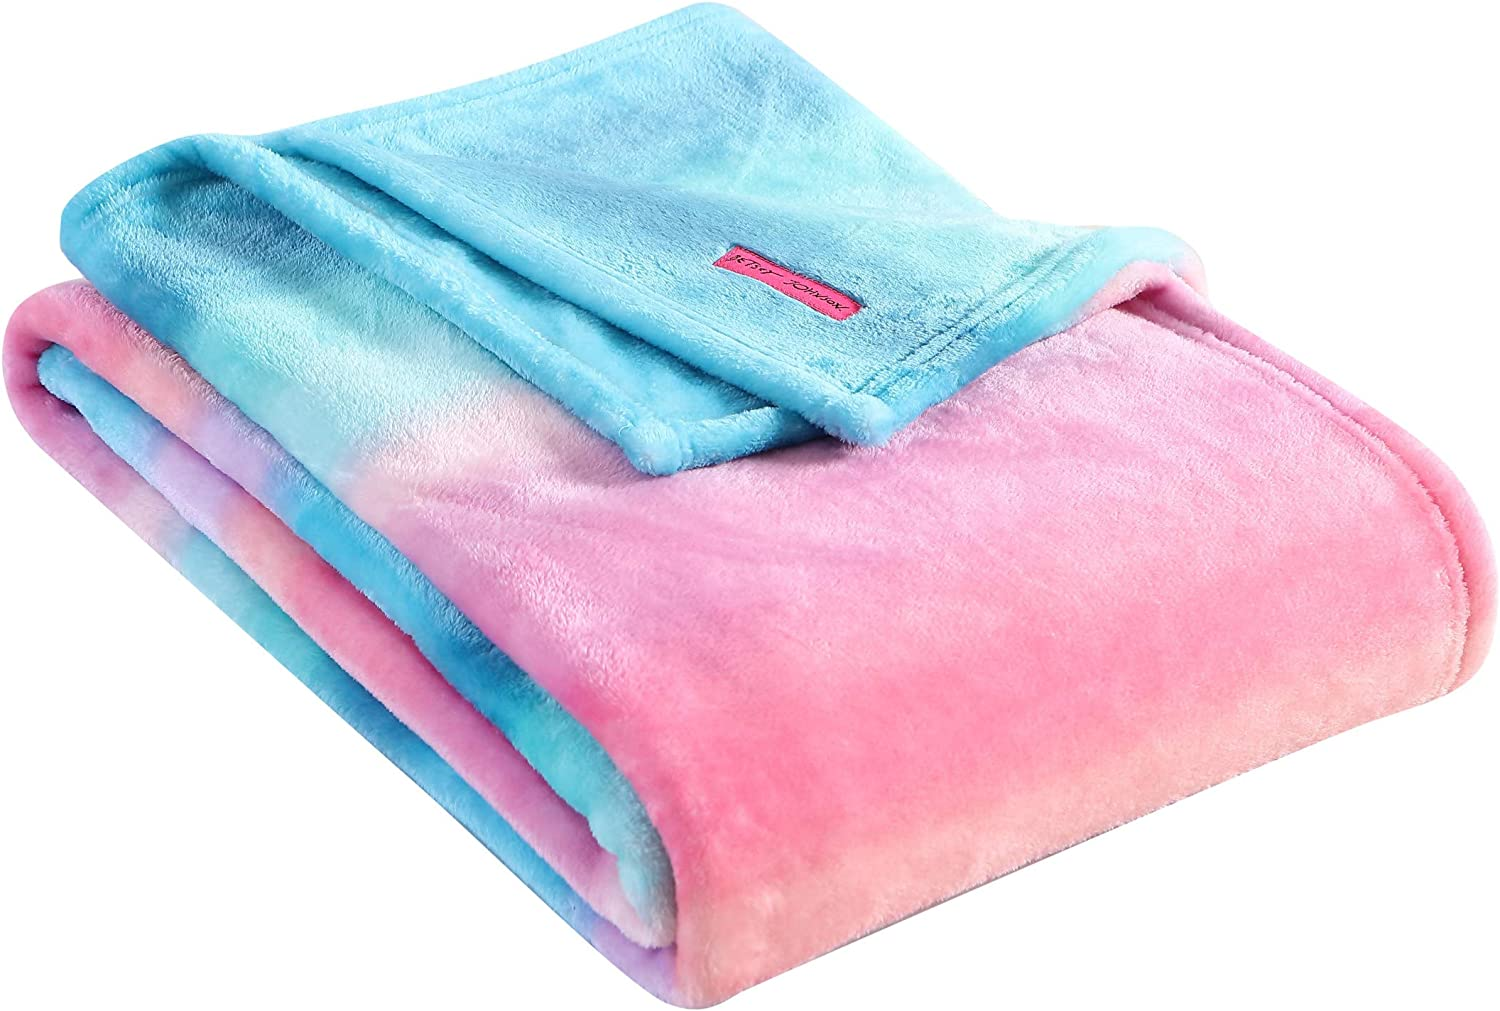 Betsey Johnson   Plush Collection Throw Blanket, Ombre,USHSHF1168556